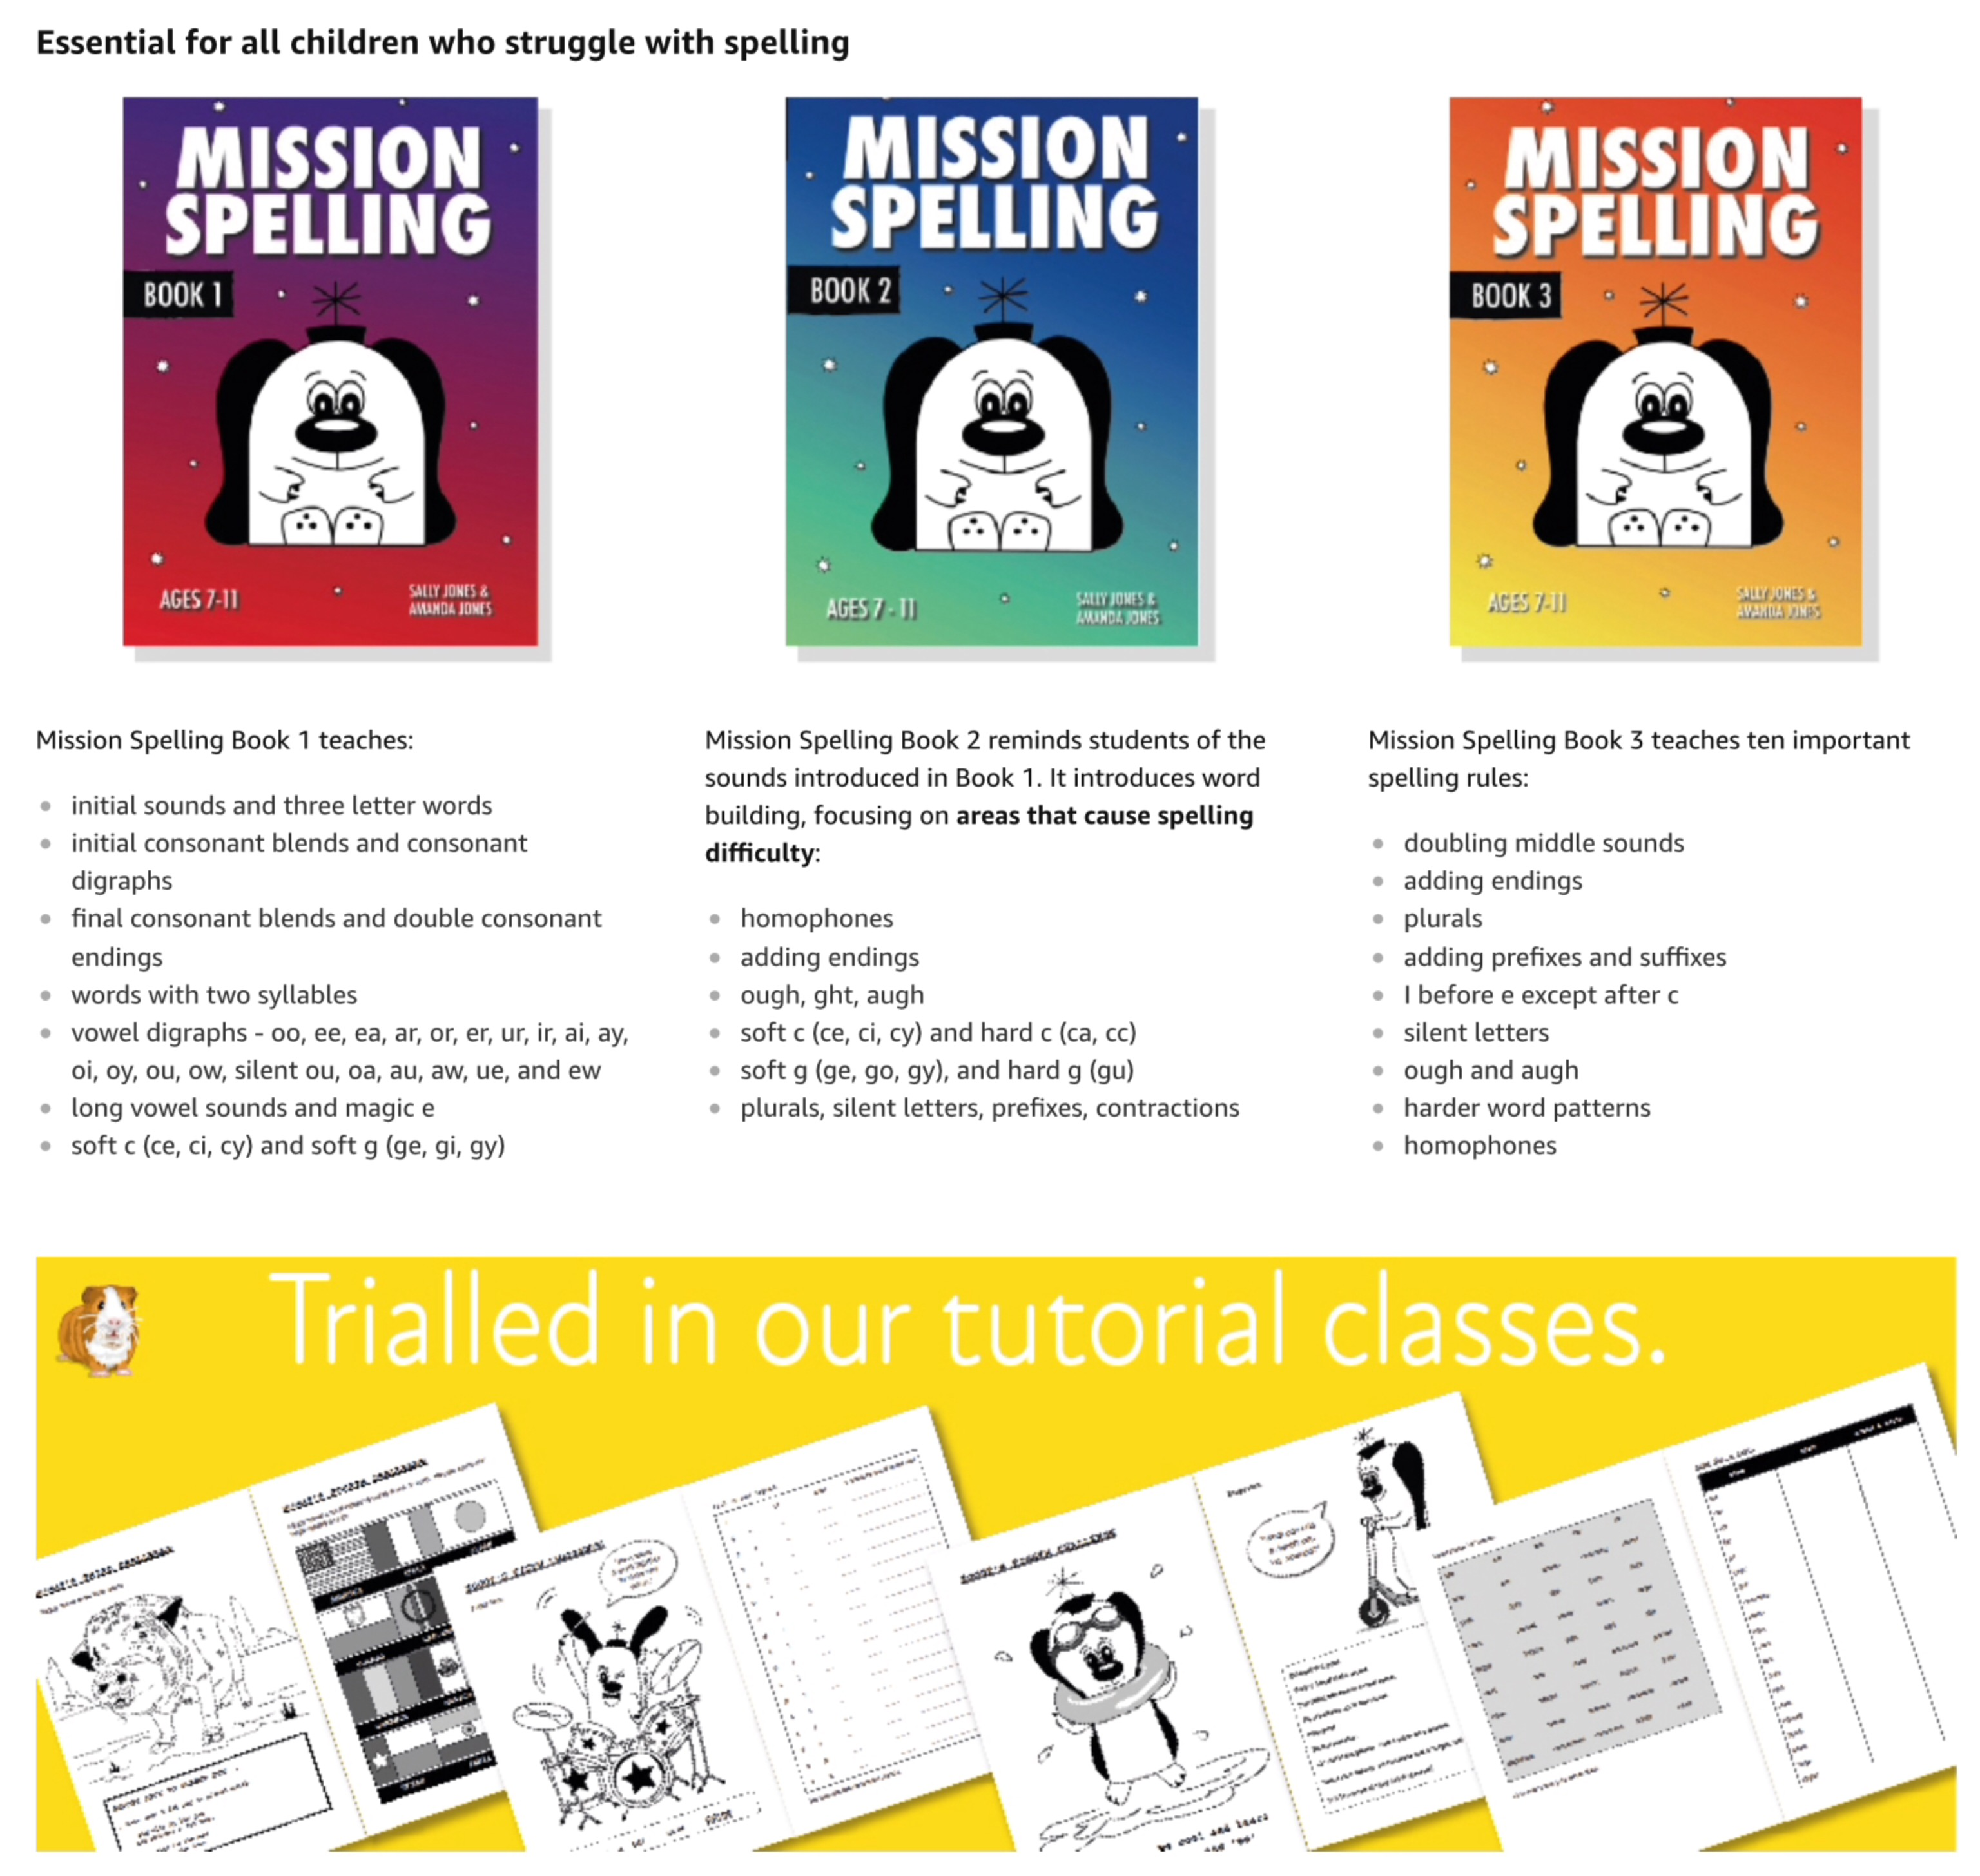 Mission Spelling Book 2: A Crash Course In Spelling With Phonics (7-11 years) Digital Download